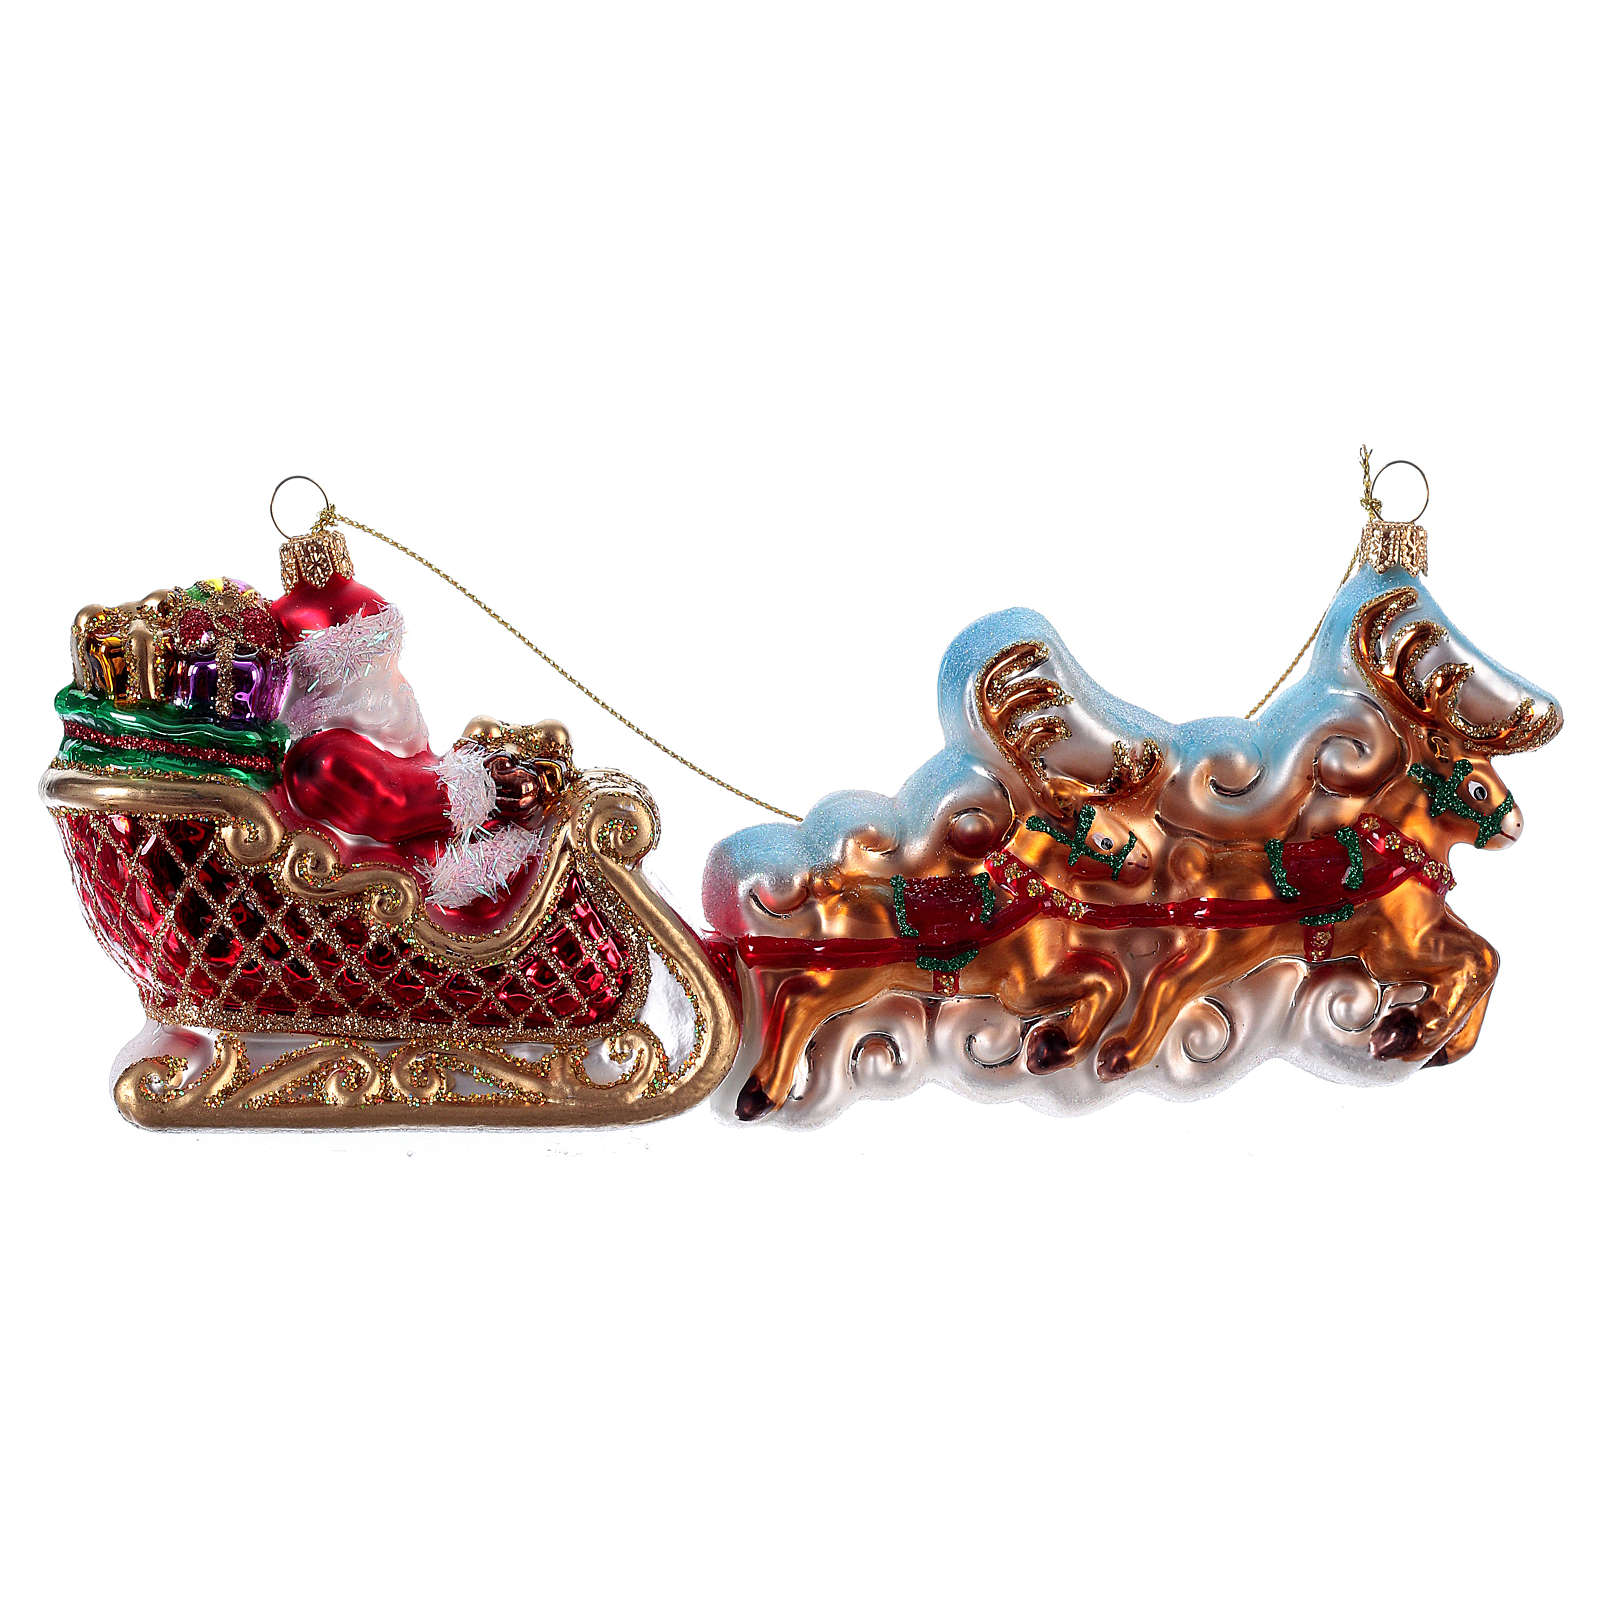 Santa Claus with Reindeer Sleigh Christmas tree blown glass decoration 4